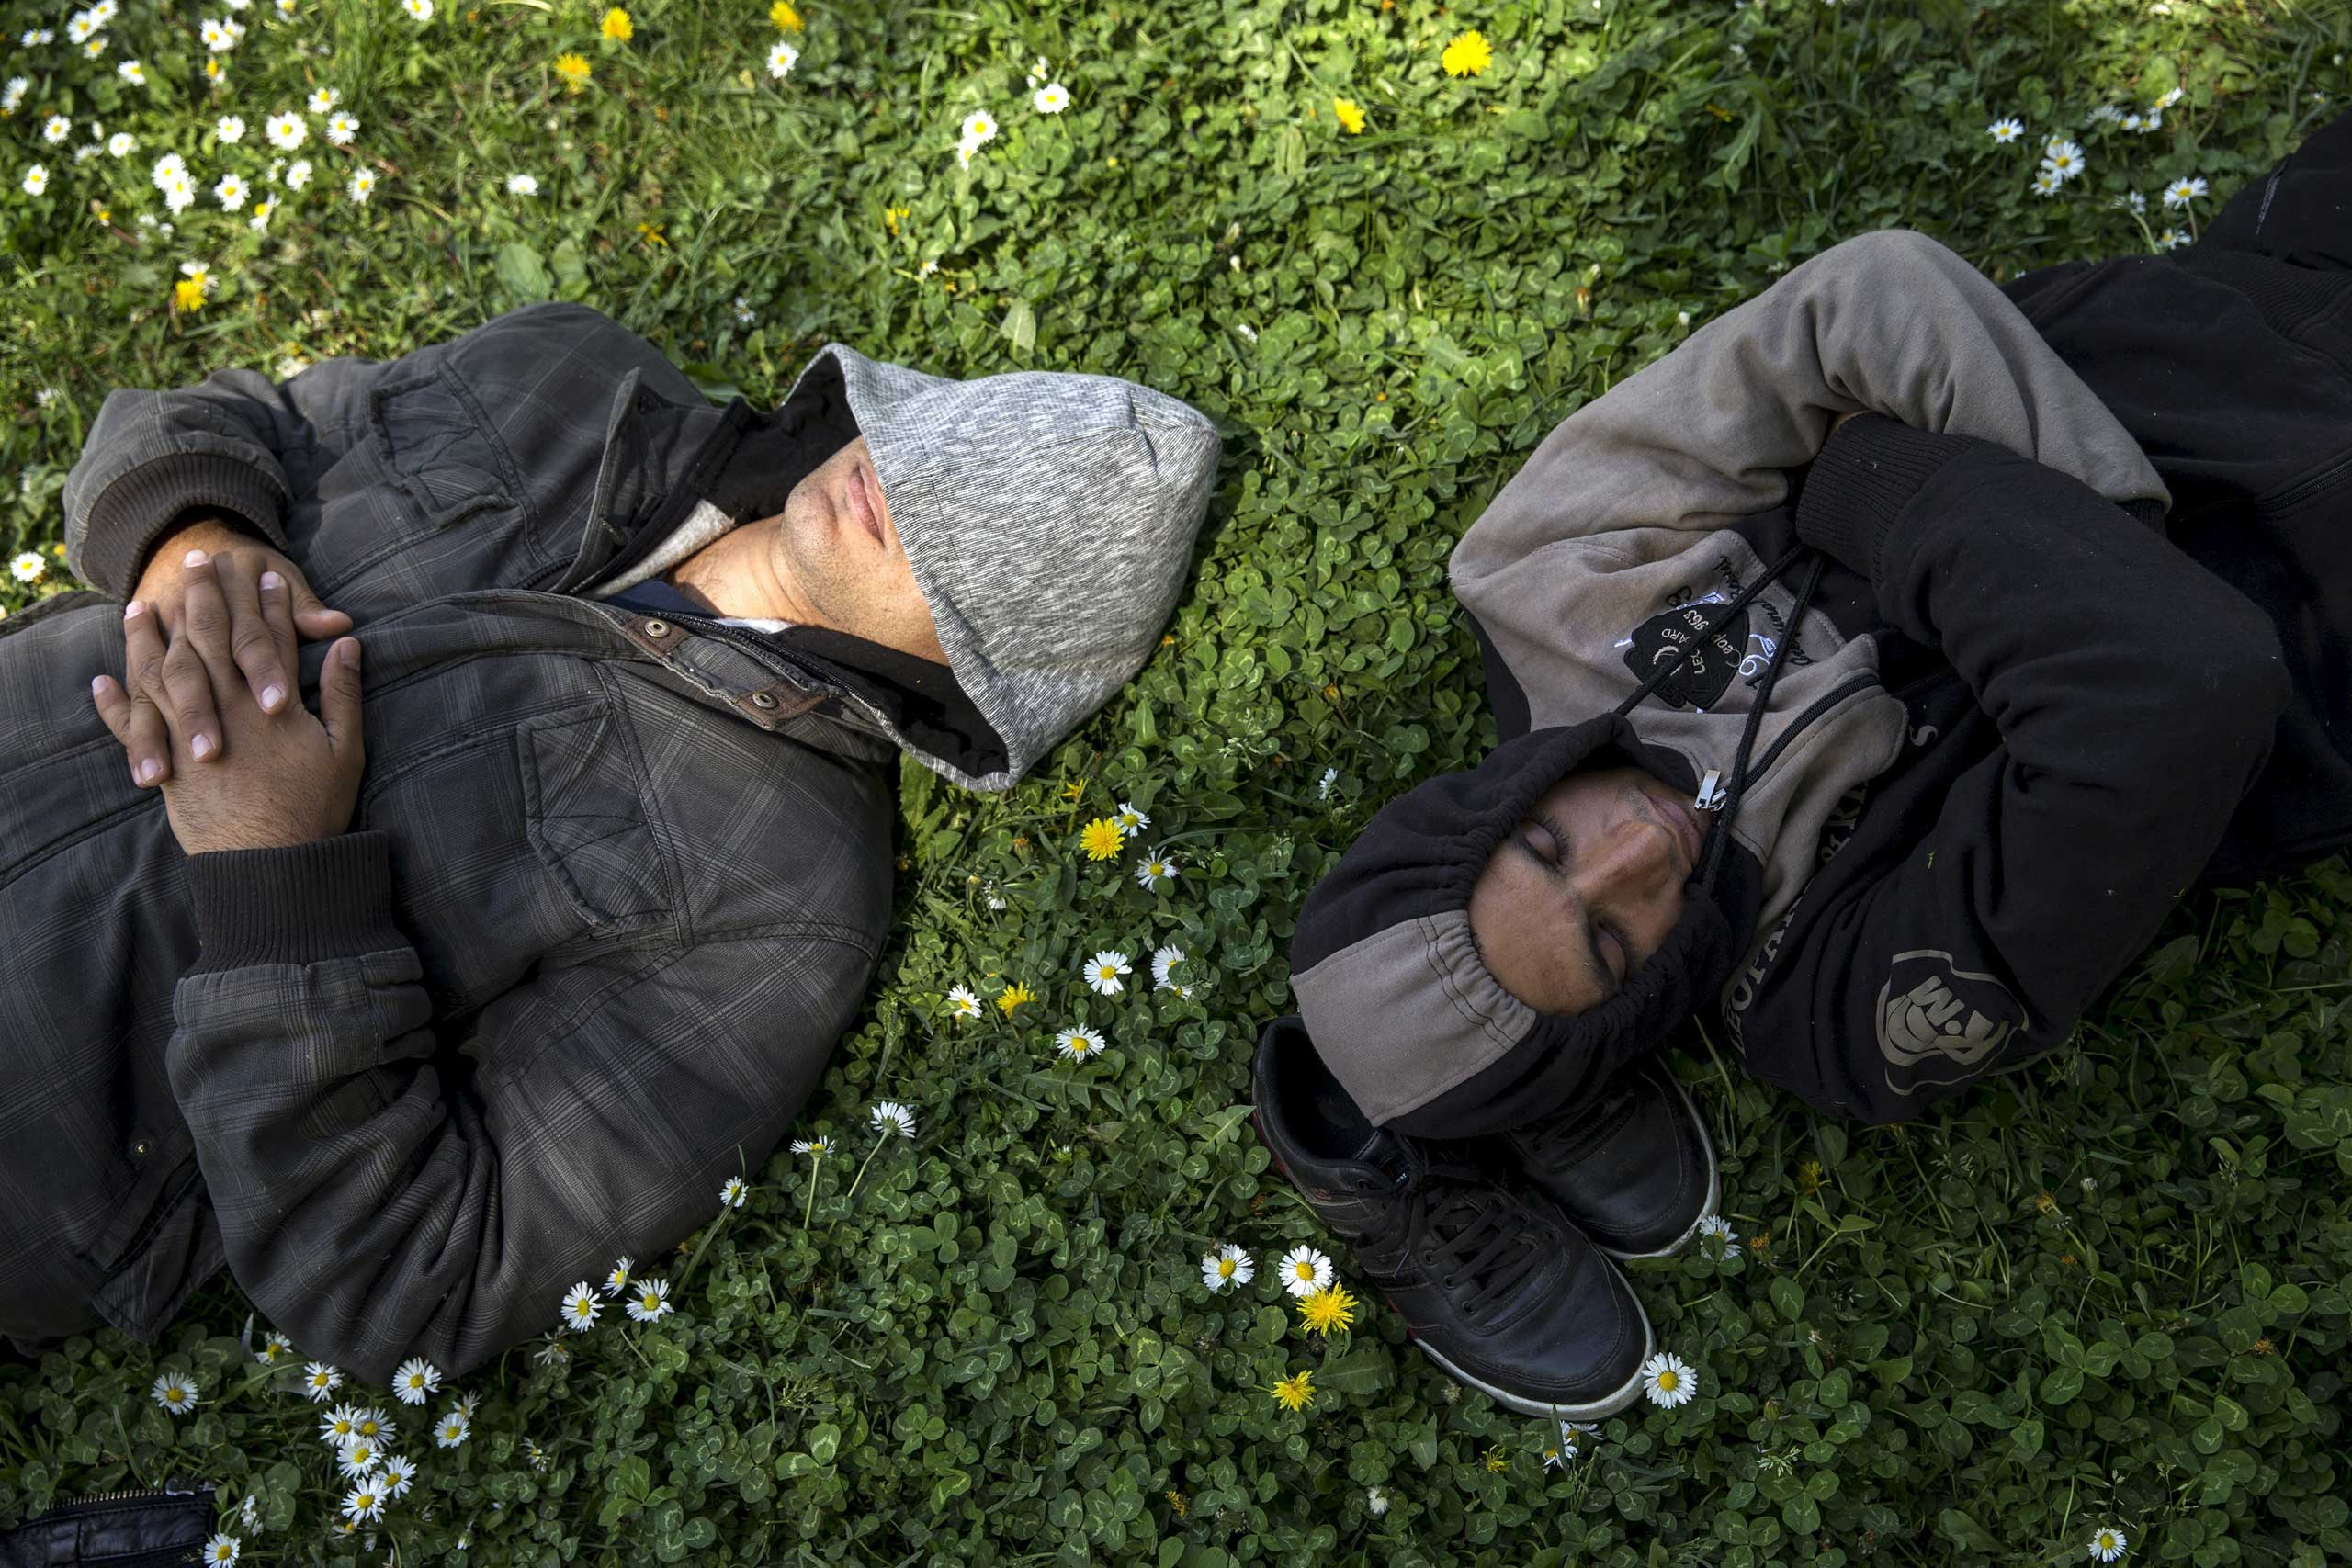 Migrants sleep in a park near the main Belgrade's bus and train station, Serbia on April 24, 2015.